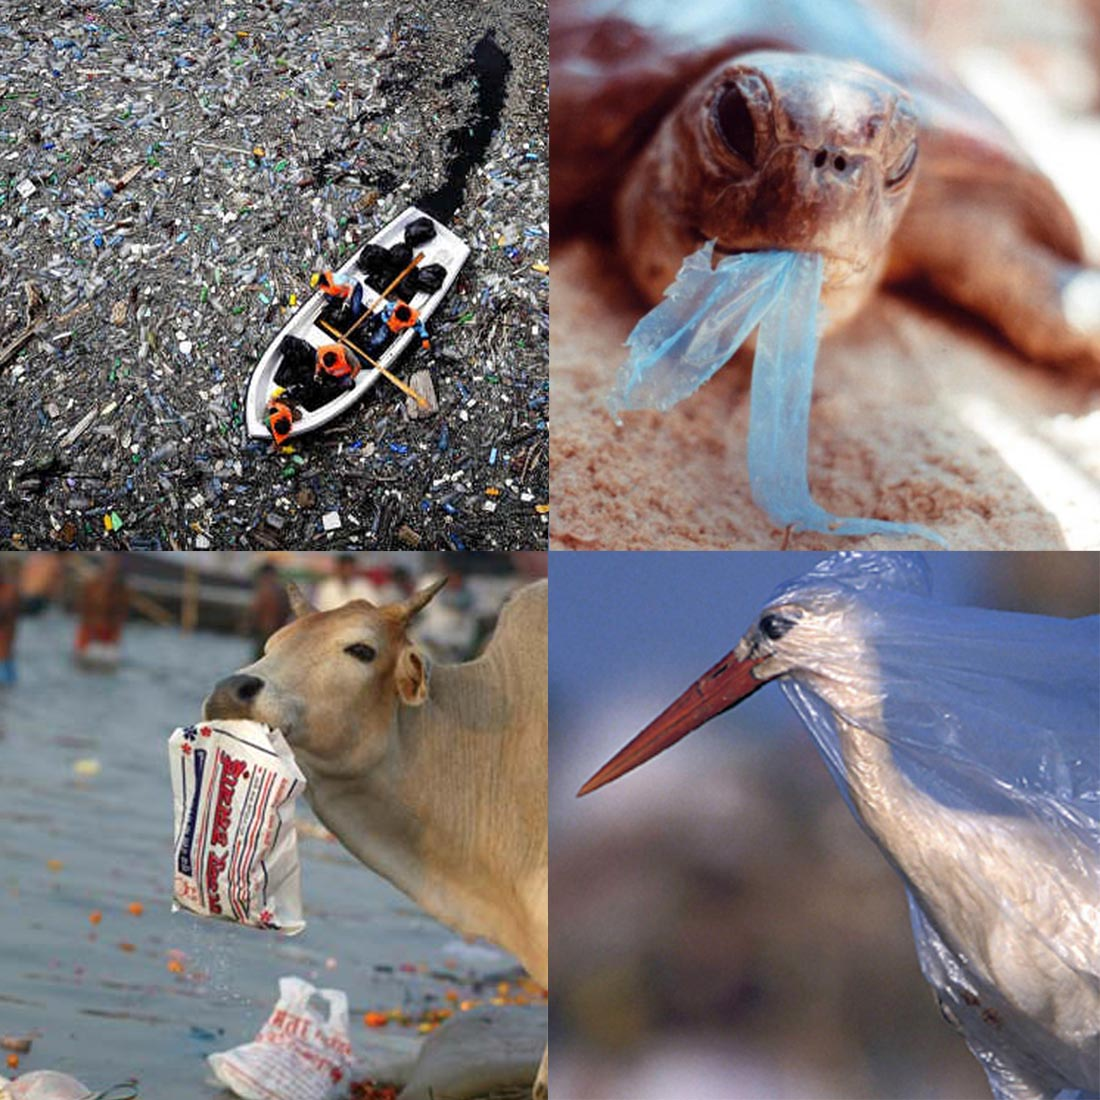 Bag at You - Fashion Blog - Animal victims of plastic bag abuse - International Plastic Bag Free Day